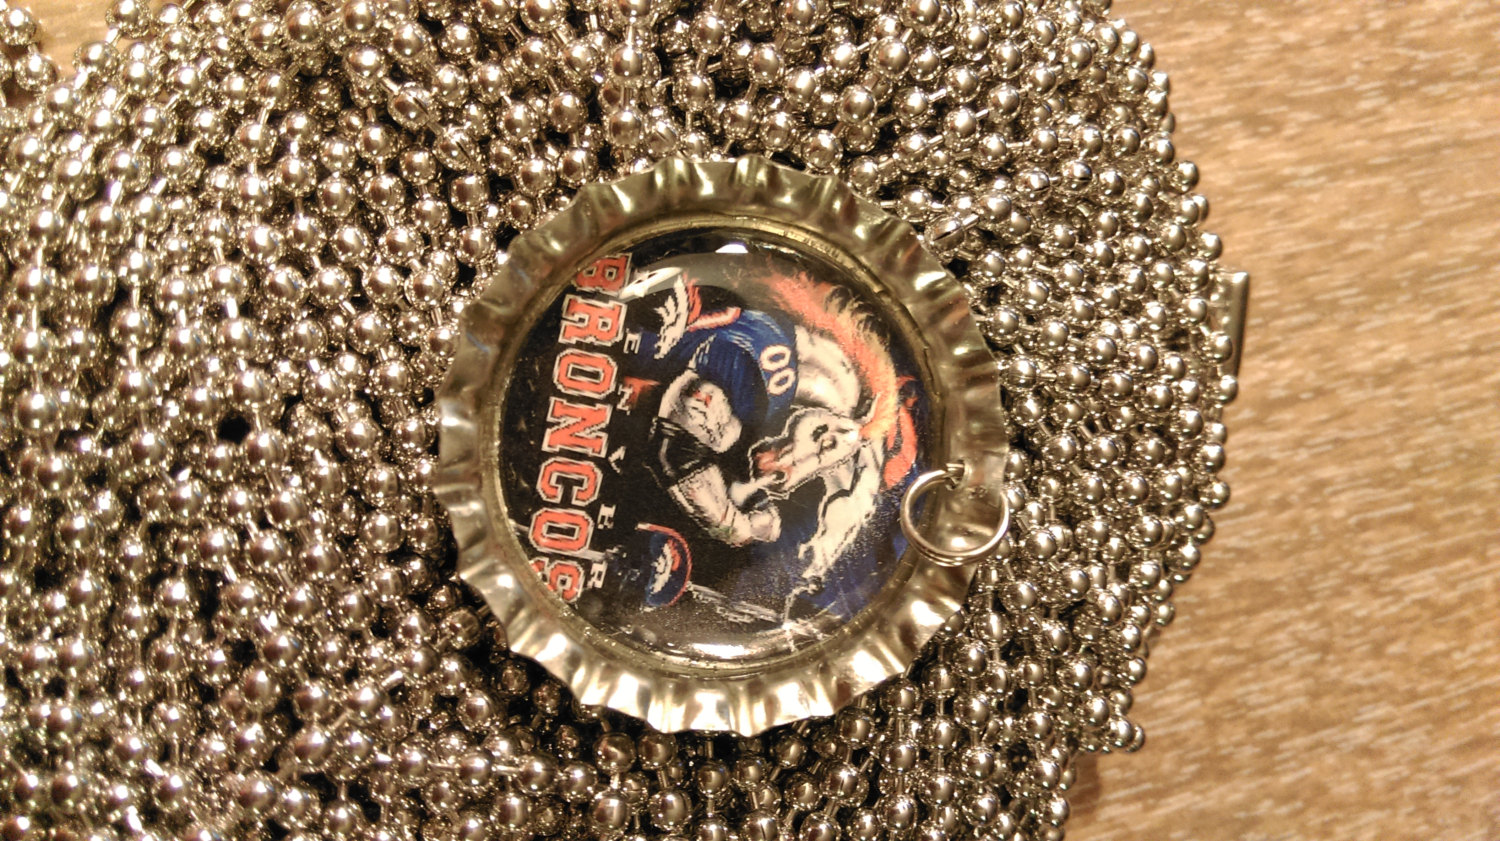 Broncos Bottle Cap Necklace With 24